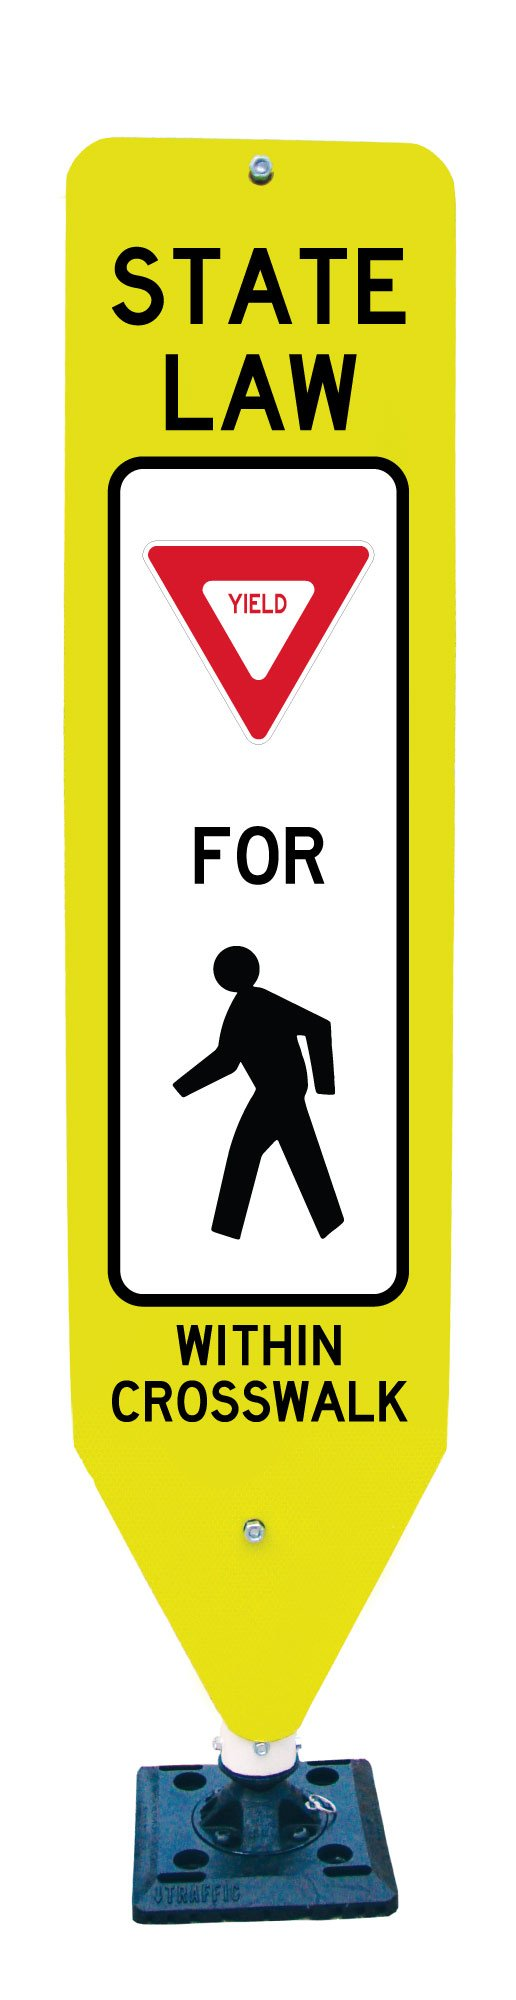 State Law YIELD Crosswalk Sign and Base